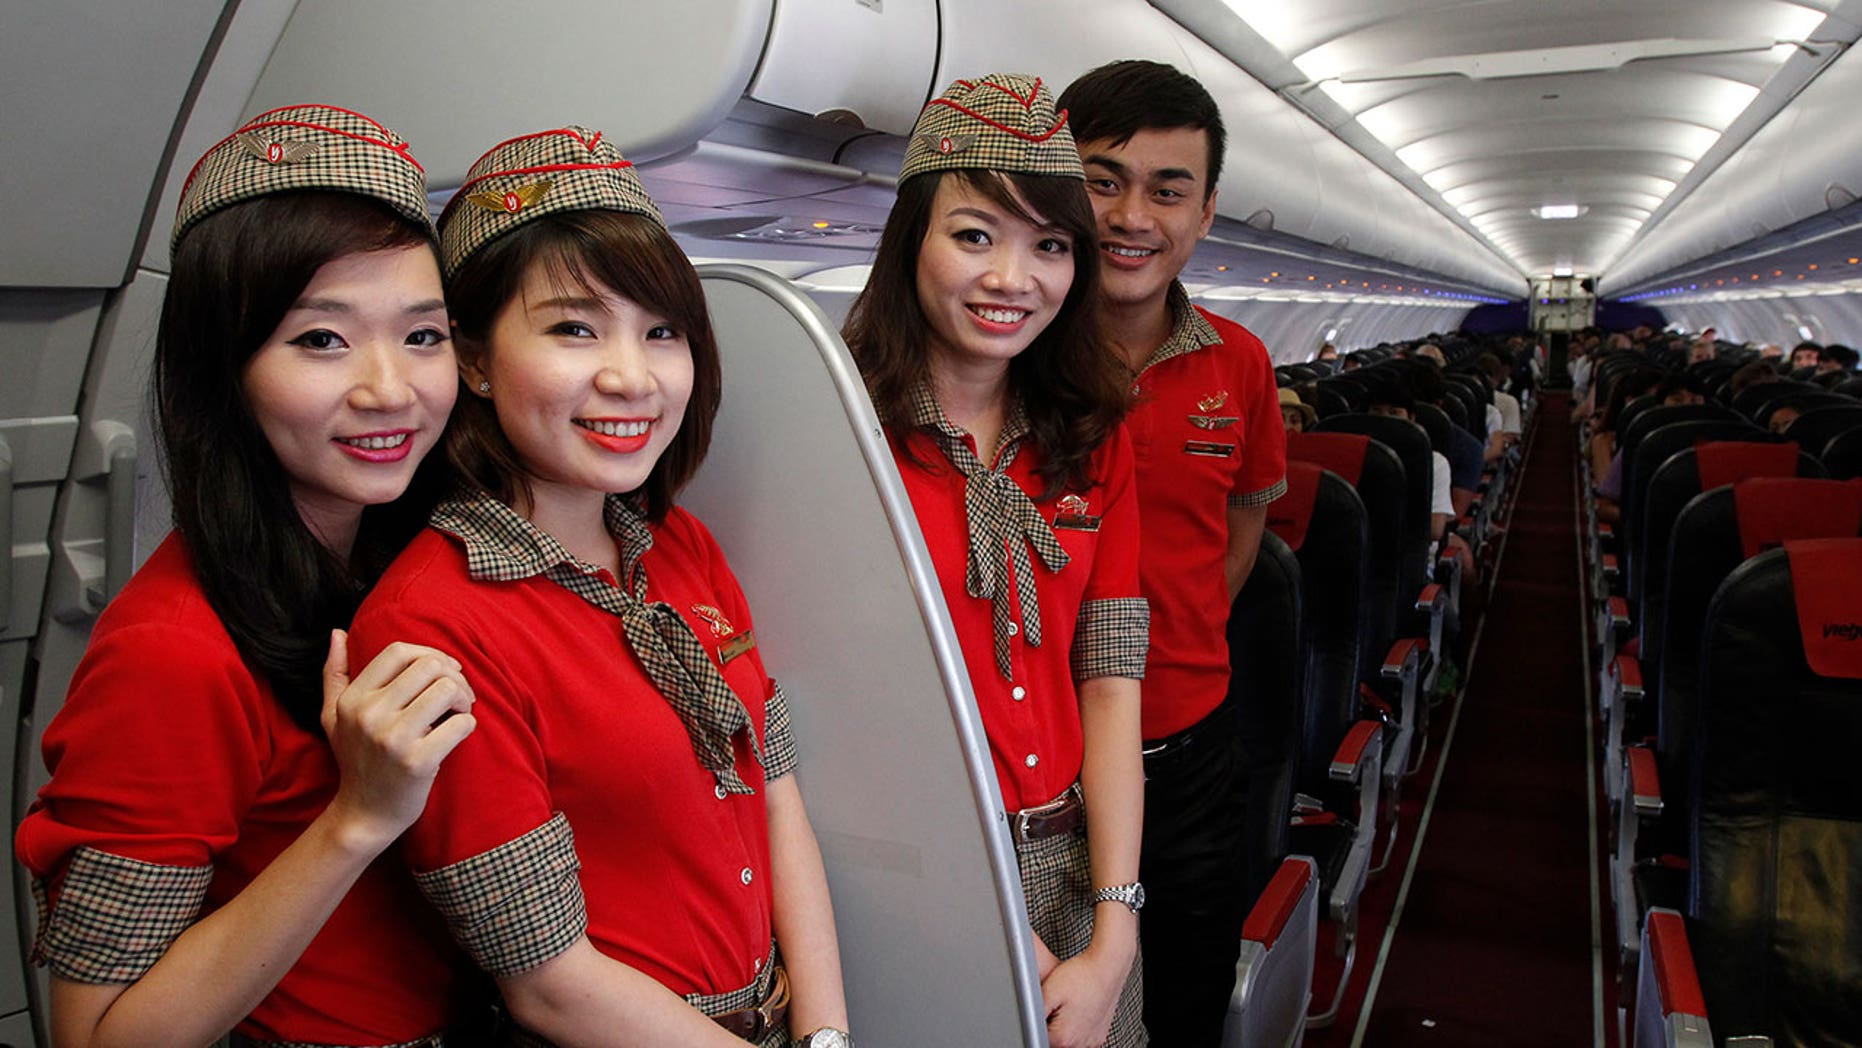 VietJet's crew will be fully clothed on the airline's new route to Jakarta, the company confirmed to an Indonesian ambassador.